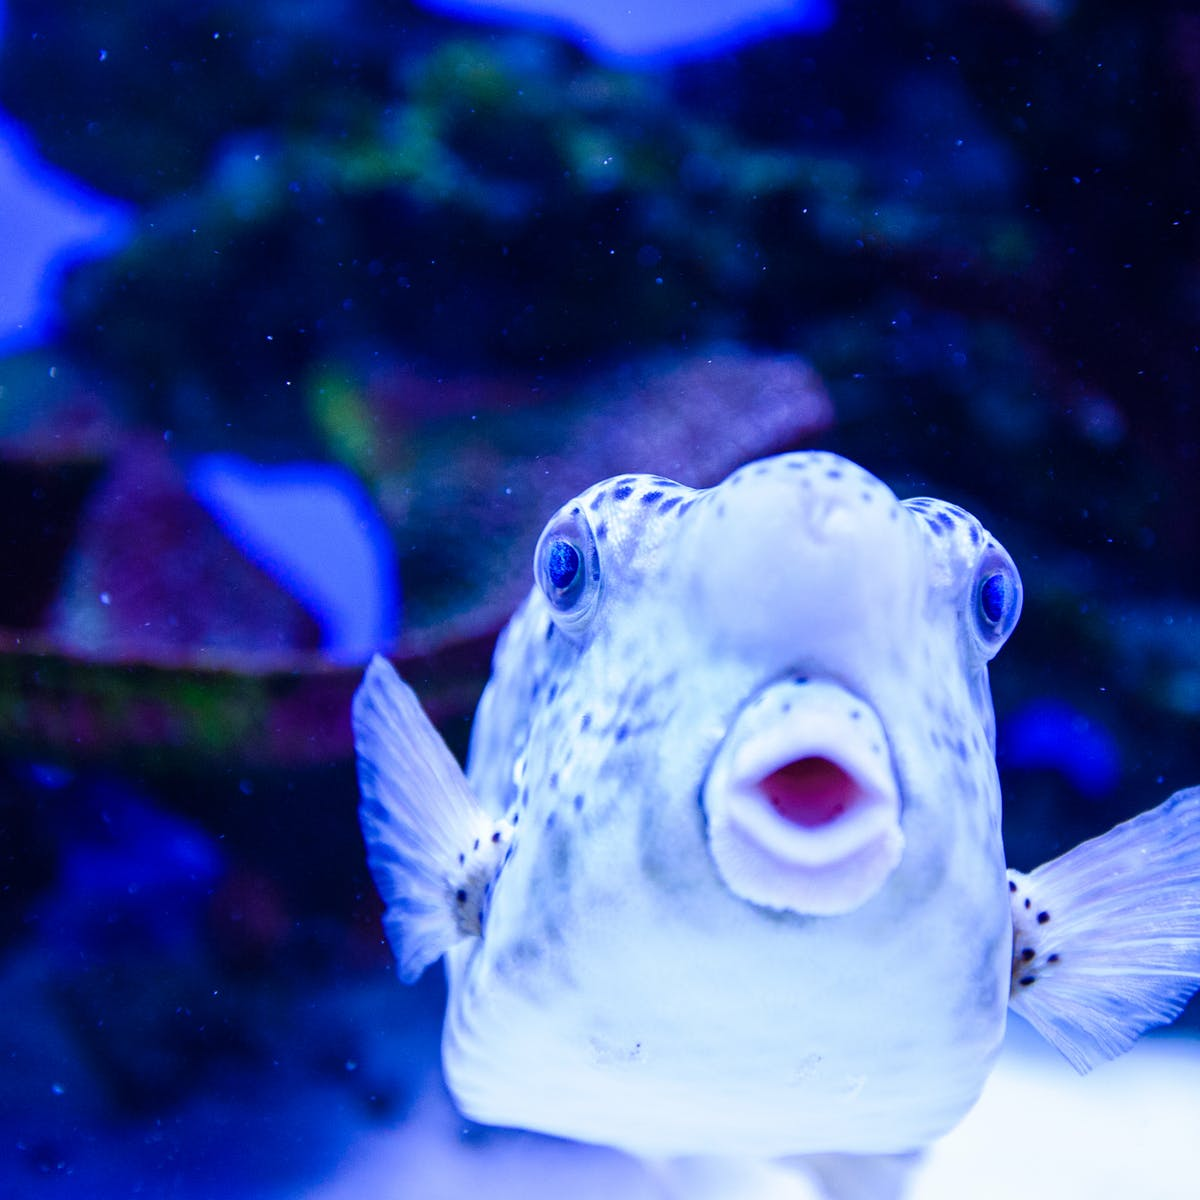 Do fish have feelings? Maybe